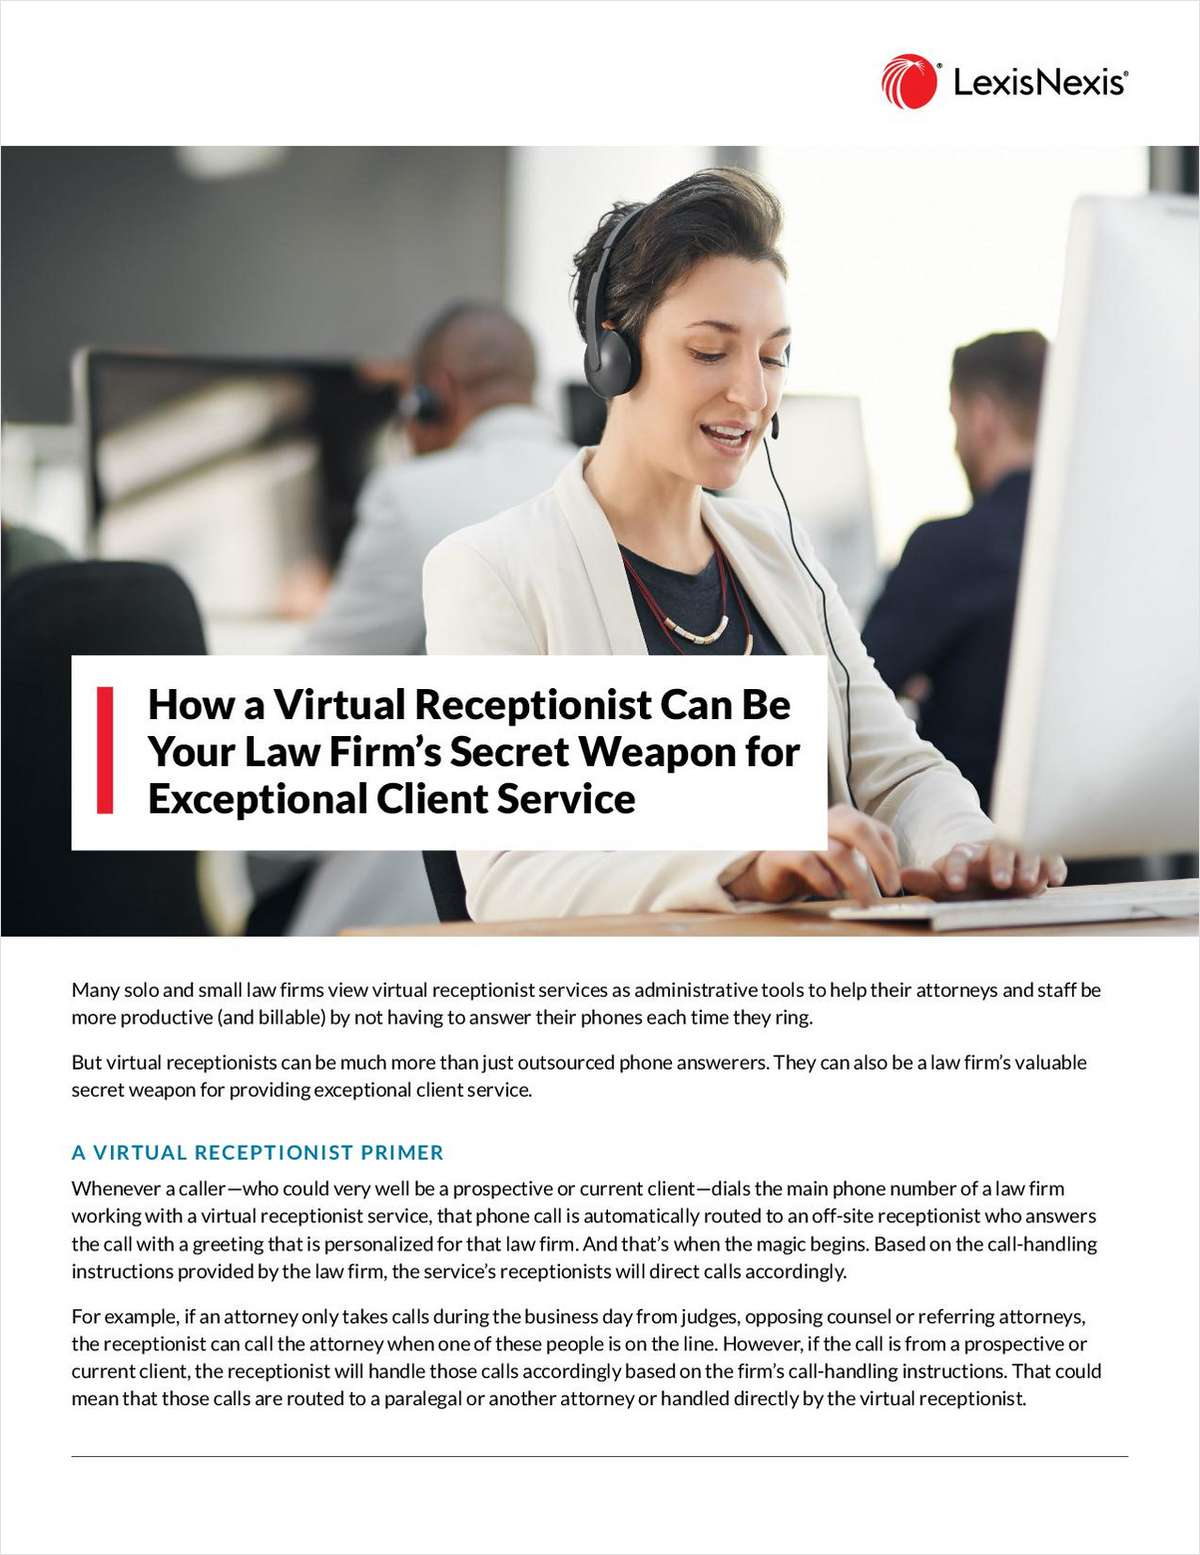 Virtual Receptionists: Your Law Firm's Secret Weapon for Exceptional Client Service